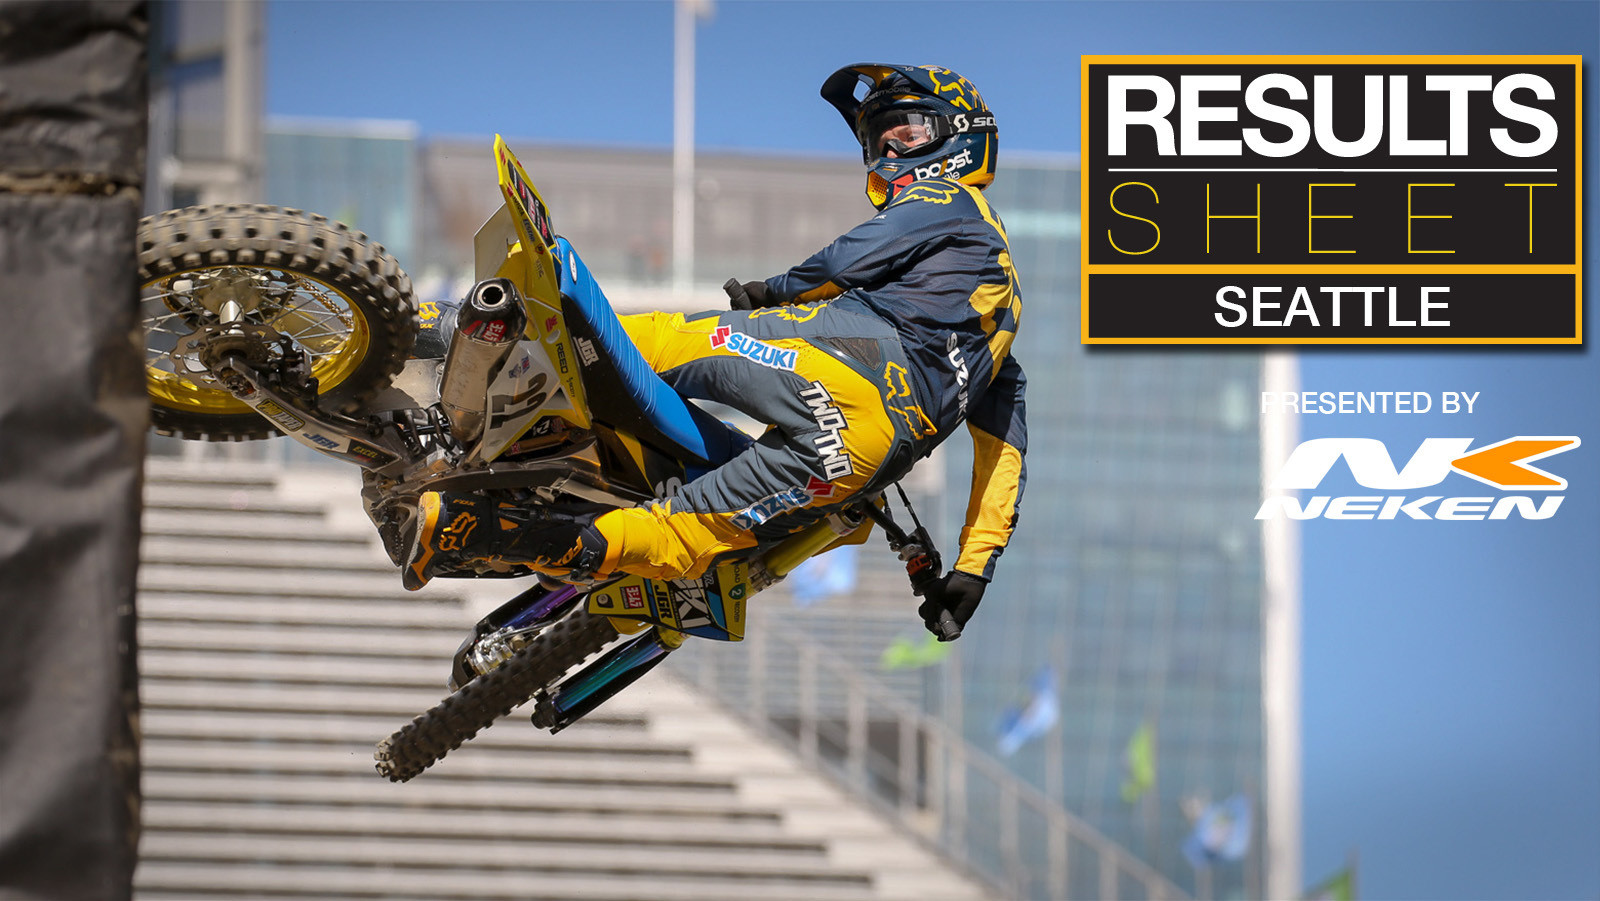 Results Sheet: 2019 Seattle Supercross